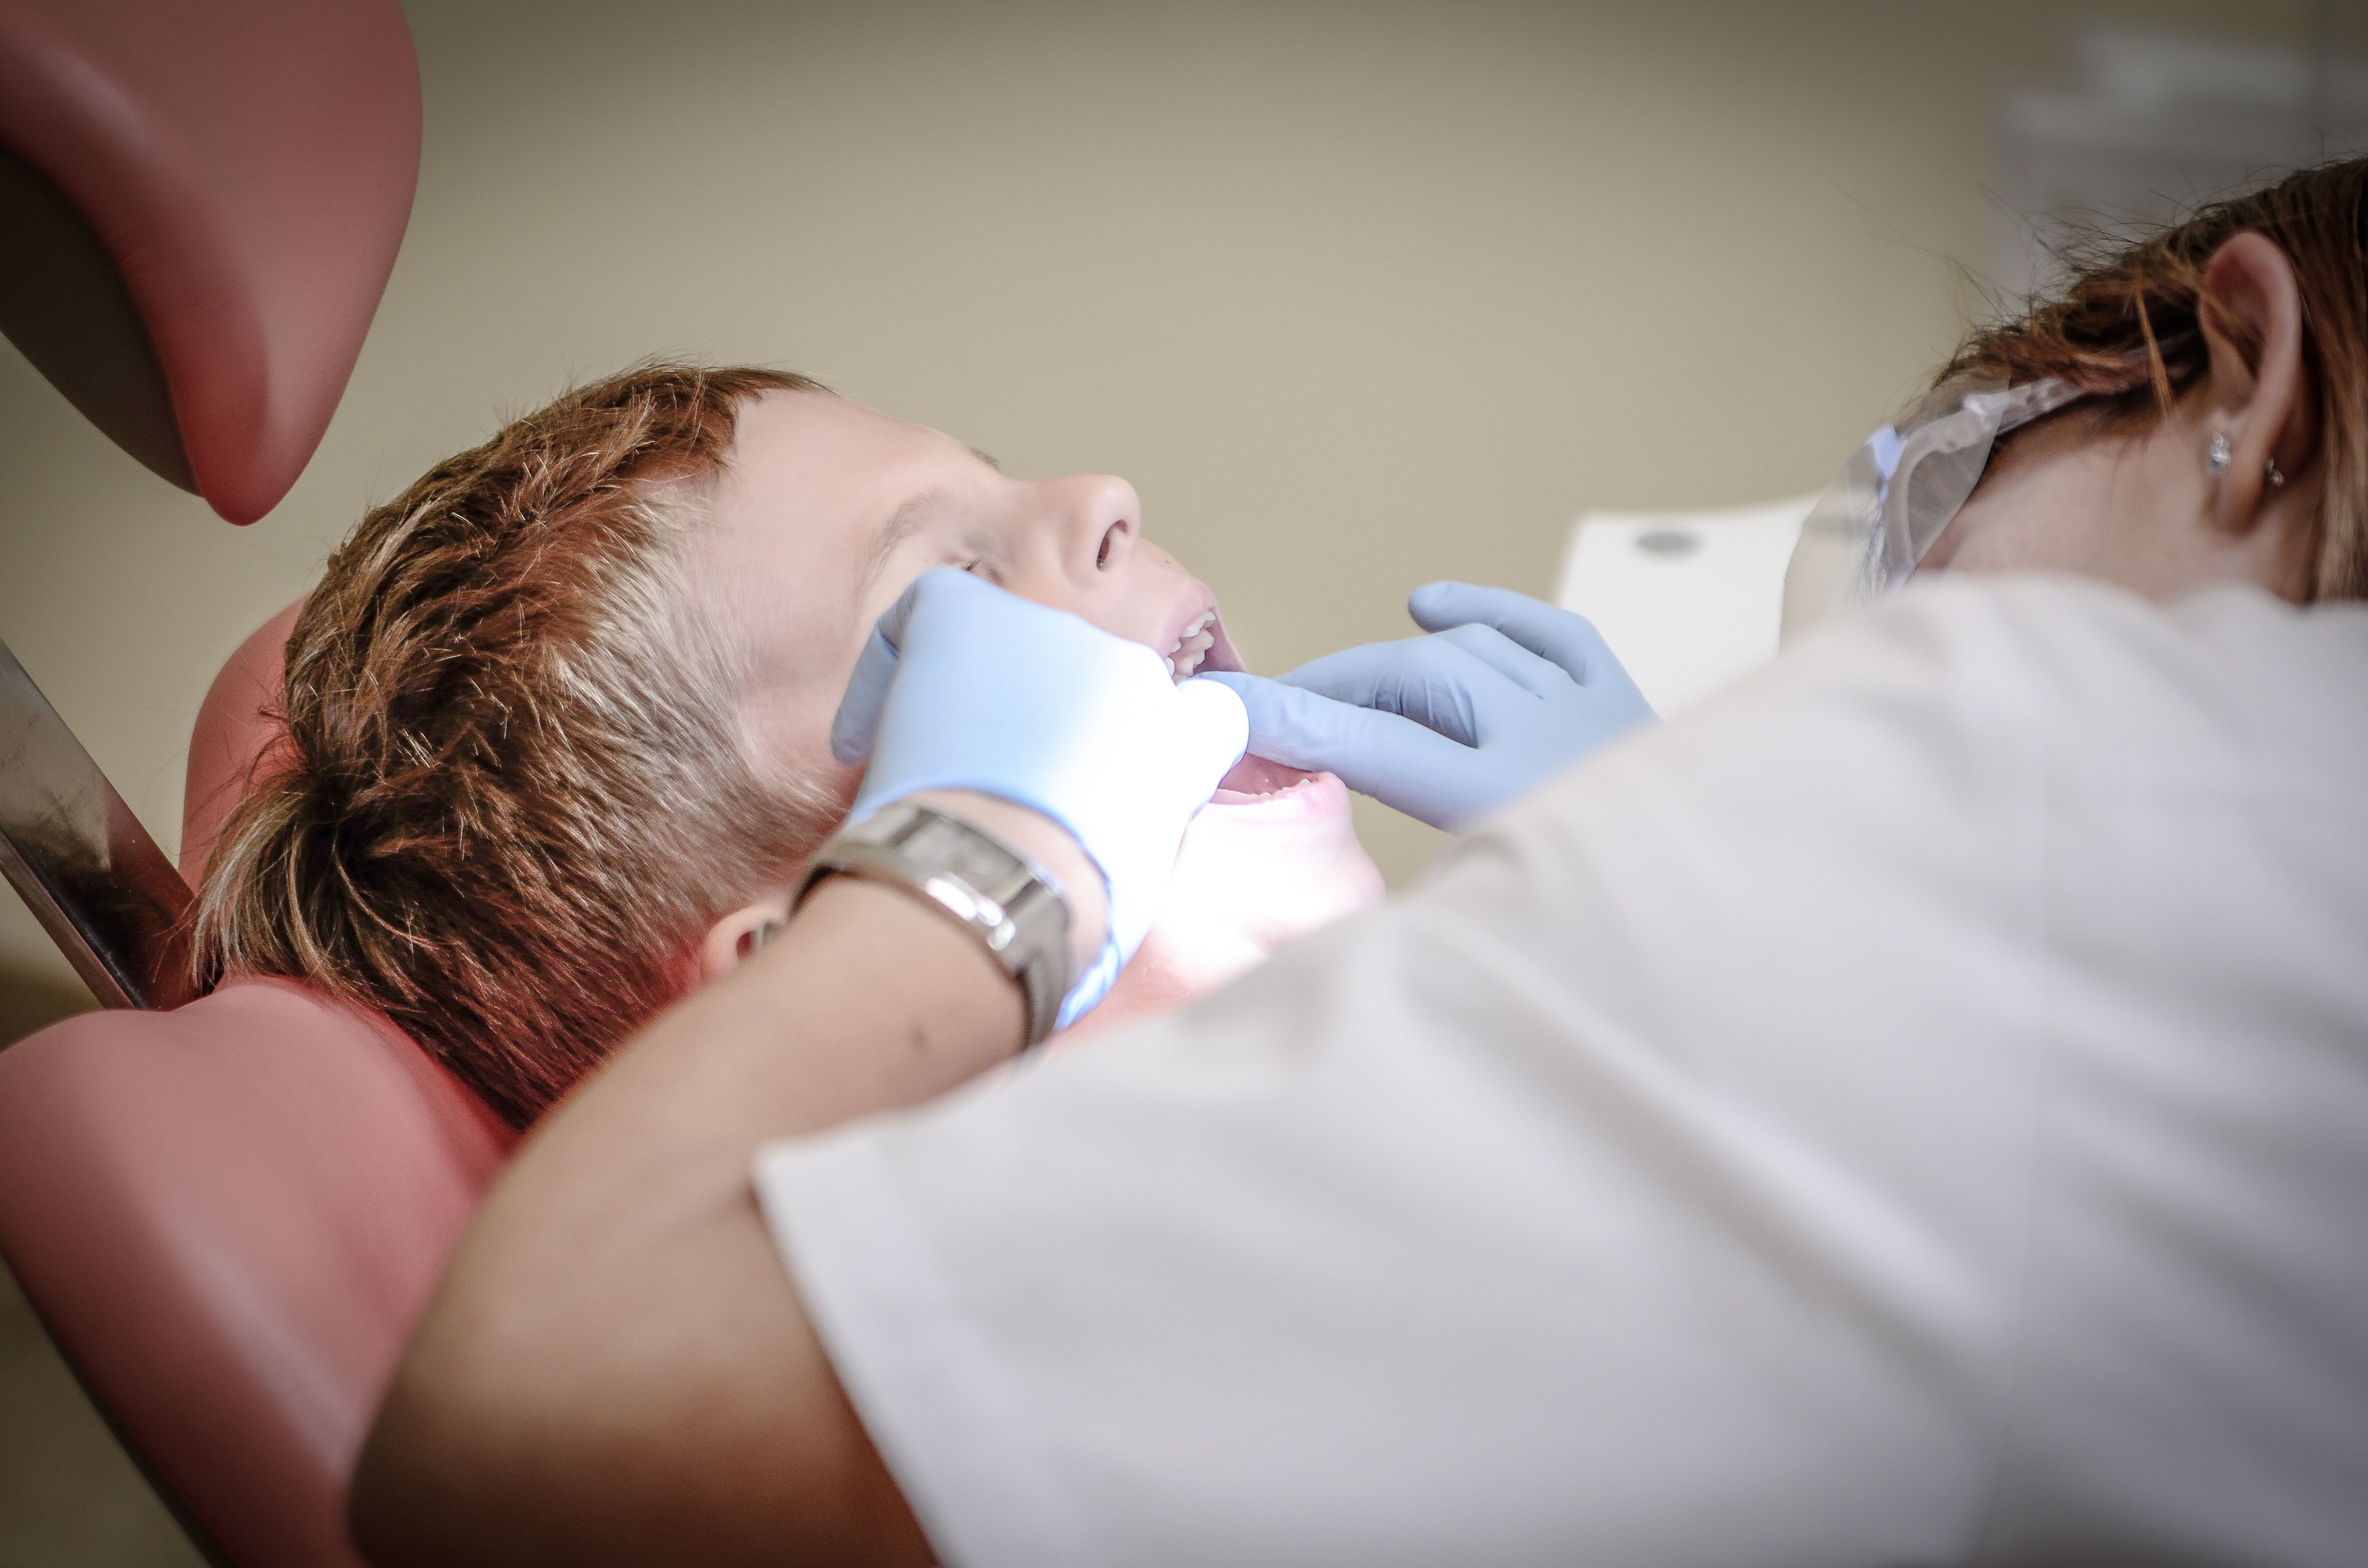 Children arenut into oral care leaving them vulnerable to plaque and